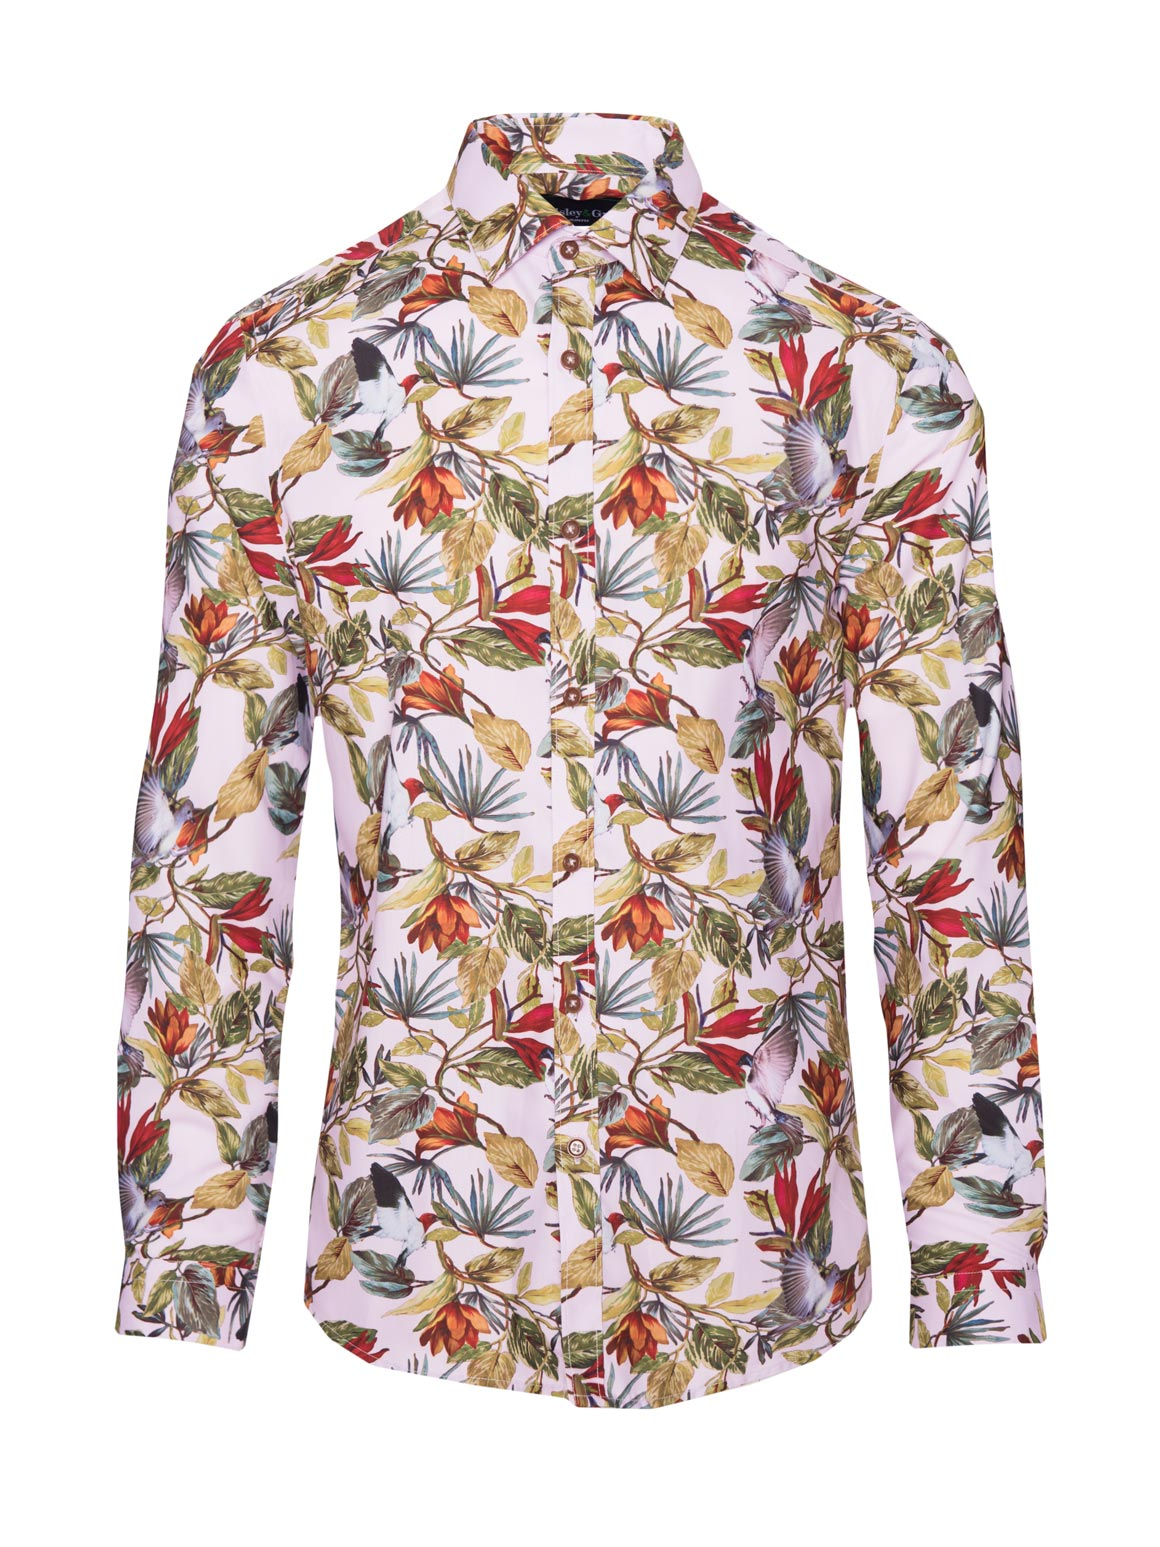 paisley & gray light pink with birds slim fit button-down long sleeve spread collar shirt 2272W